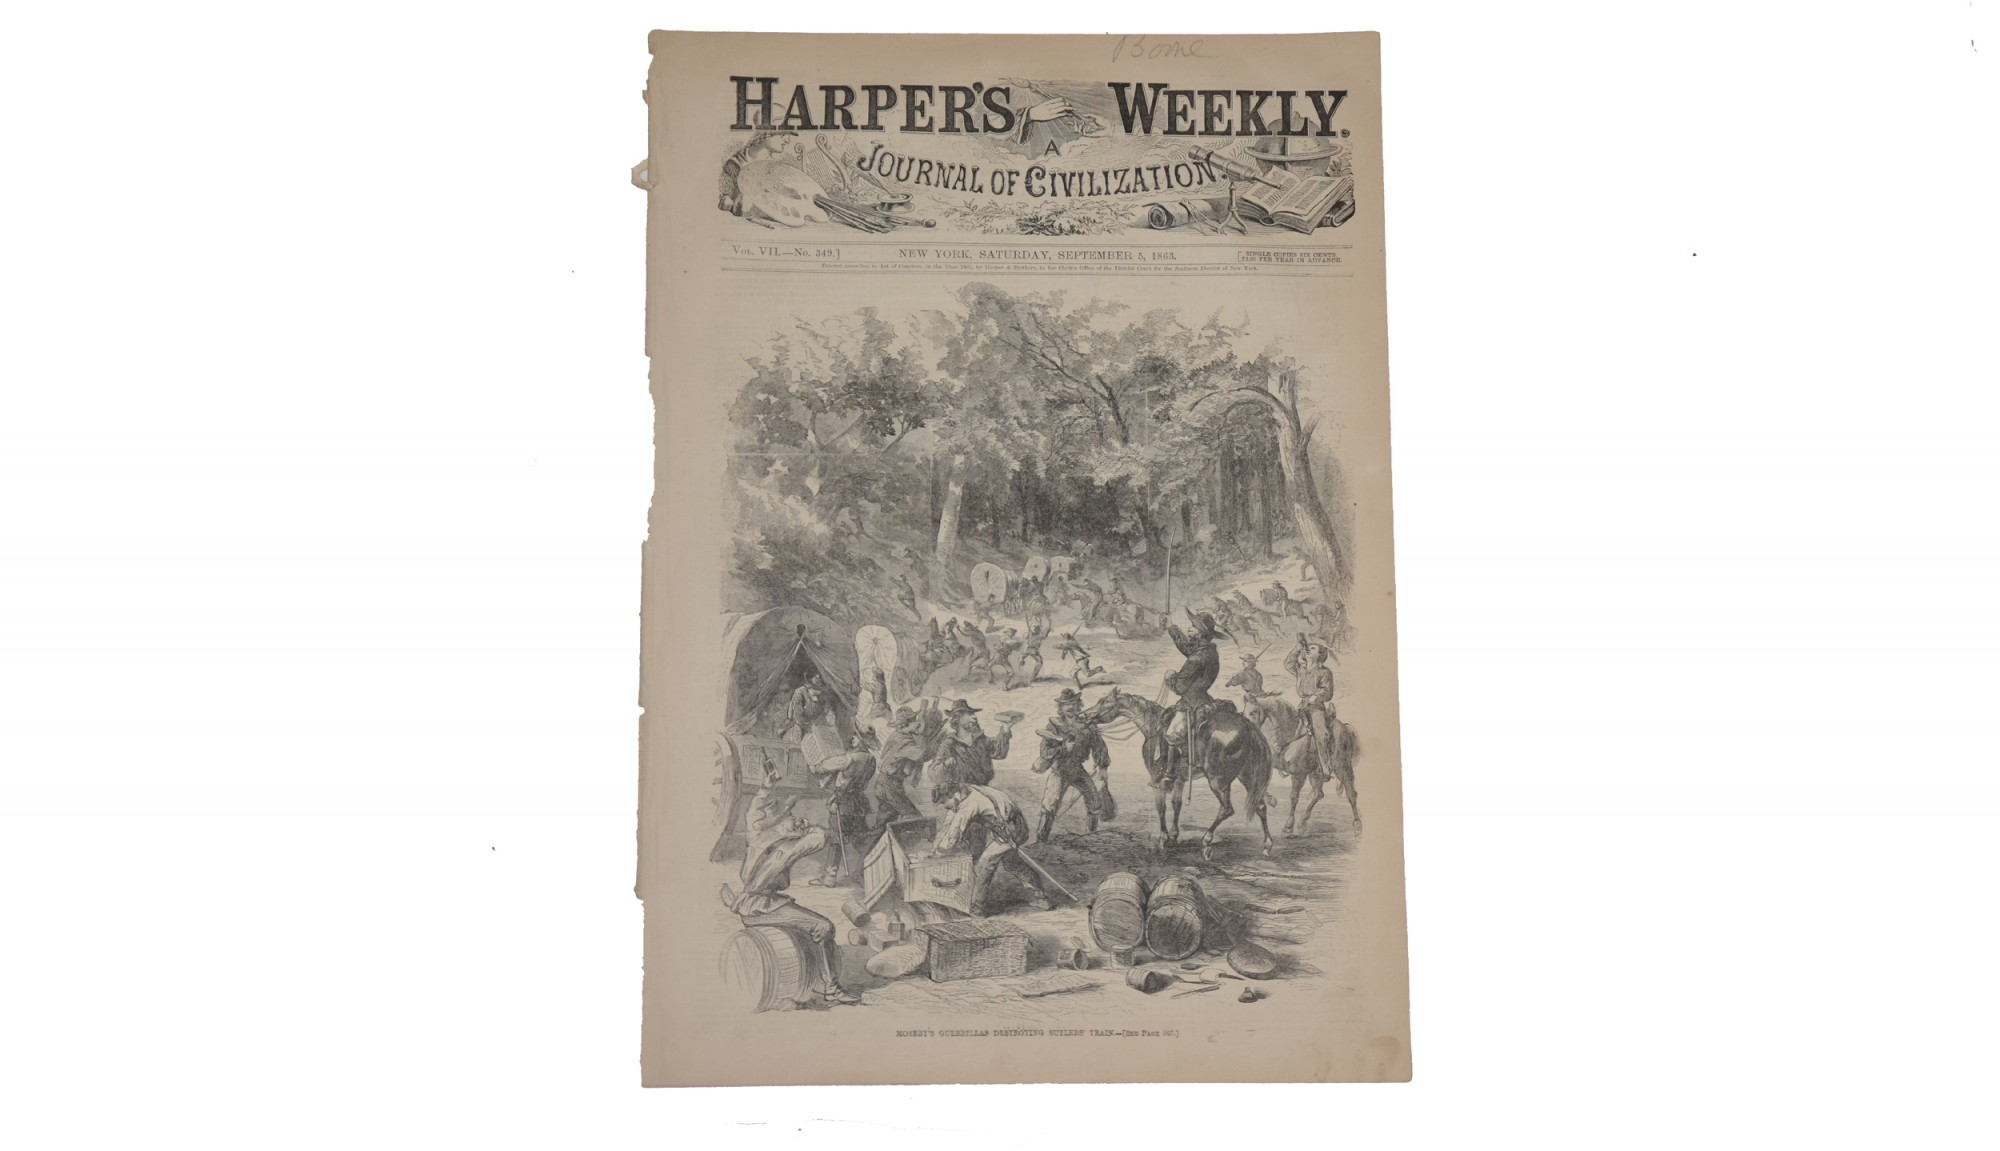 HARPER'S WEEKLY,  SEPTEMBER 5, 1863 – MOSBY'S GUERRILLAS